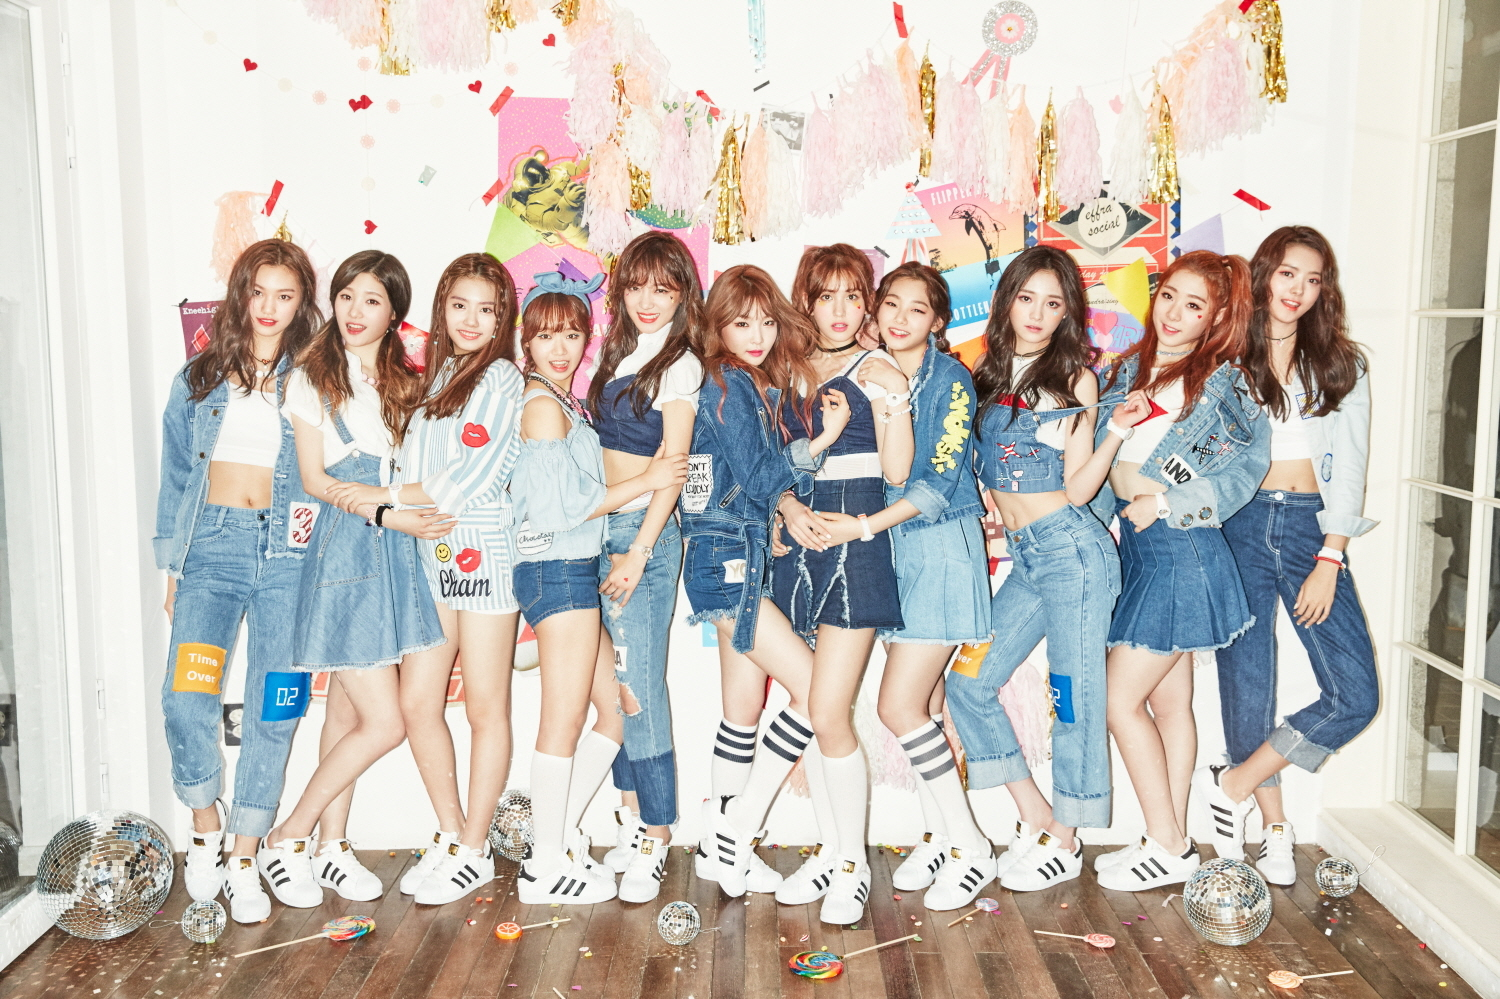 I.O.I Shares Plans For Unit Group's Album Release